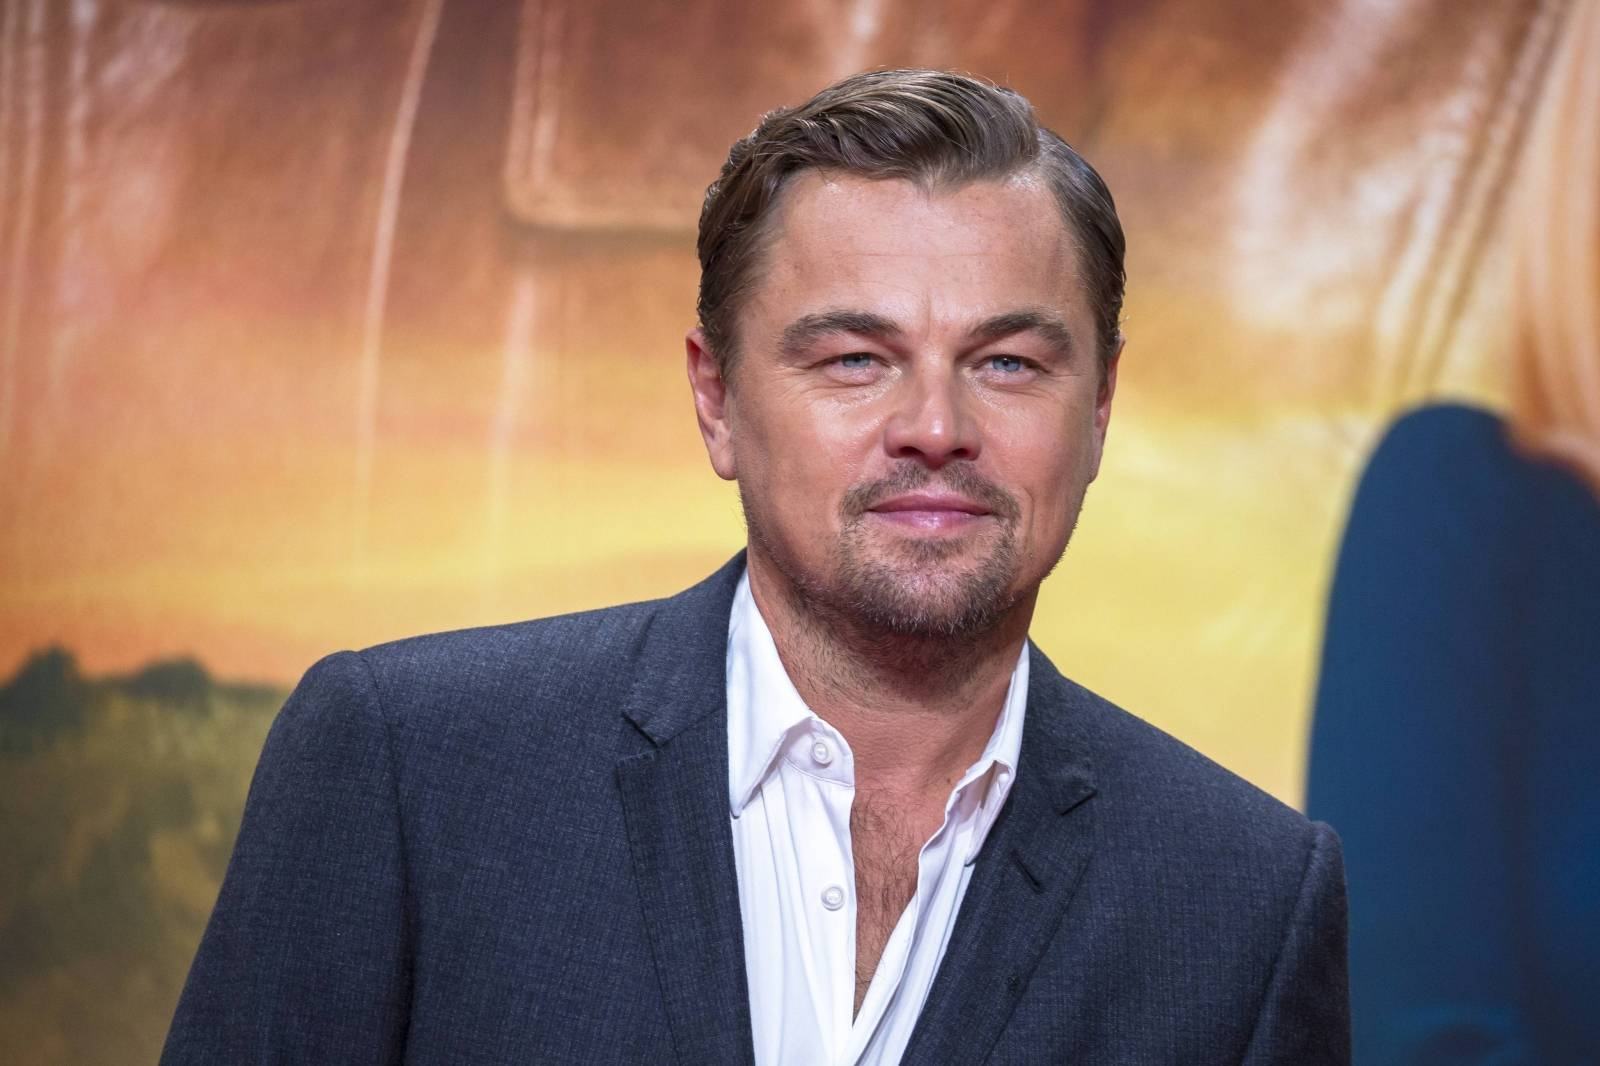 German premiere of 'Once Upon A Time in ... Hollywood'